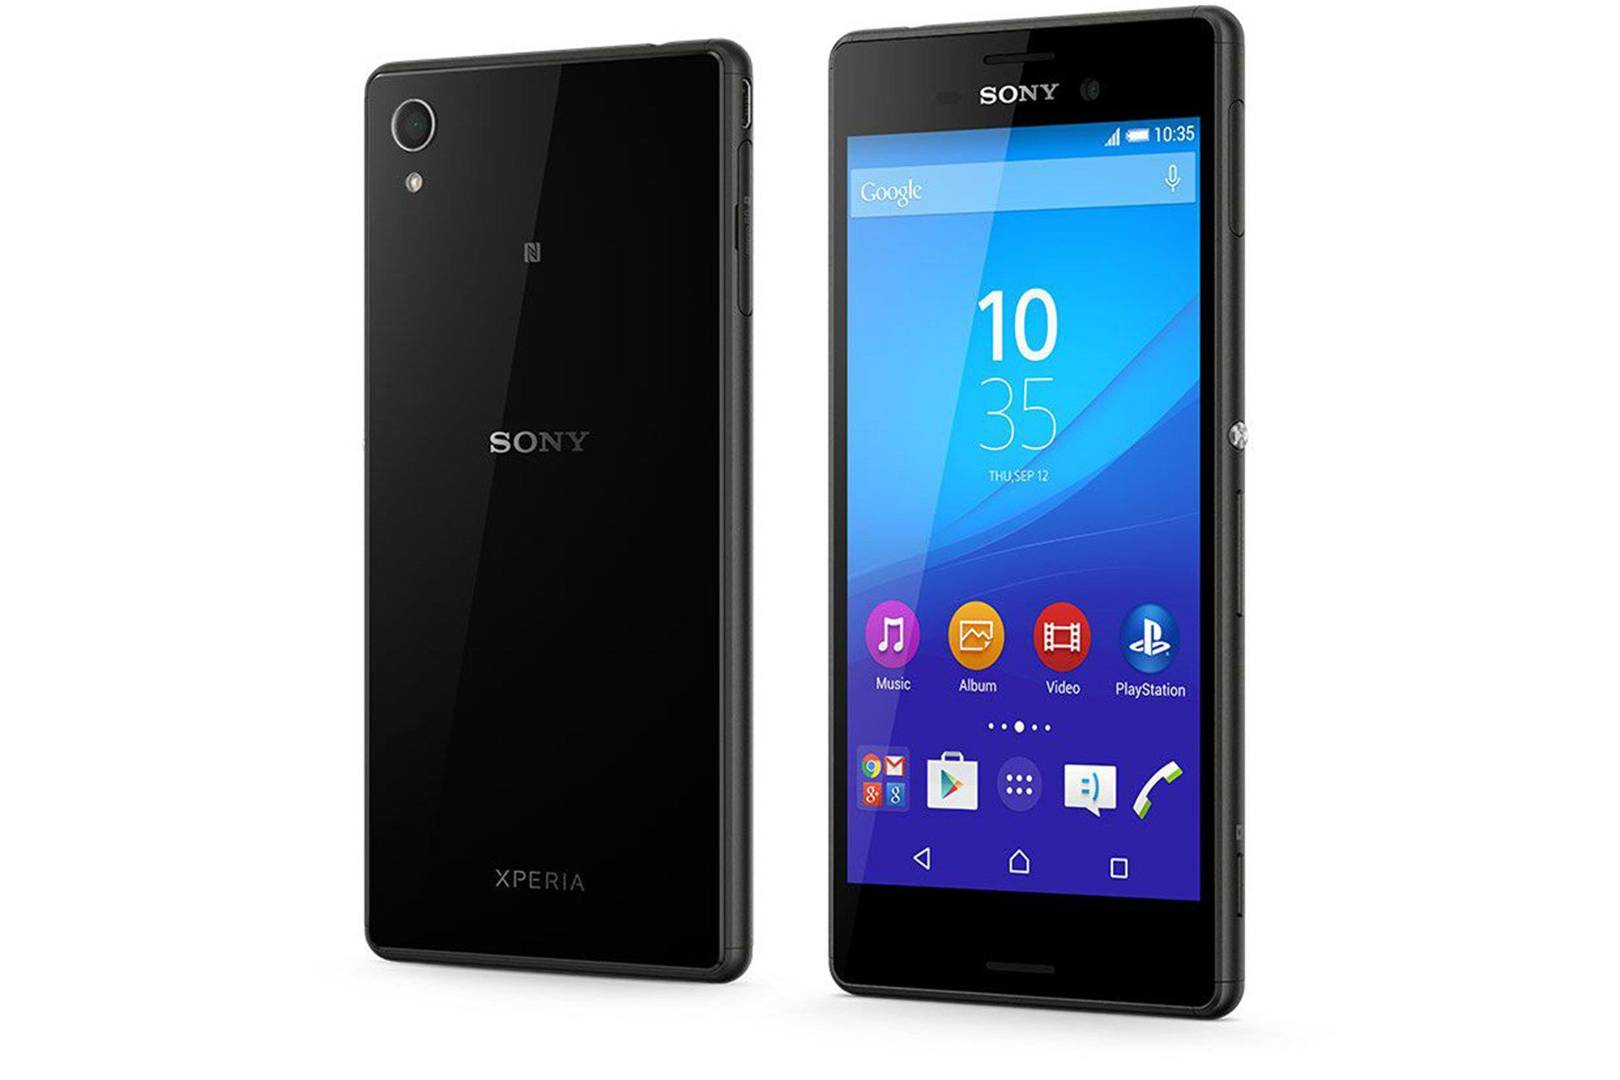 Overview of the smartphone Sony Xperia M Dual